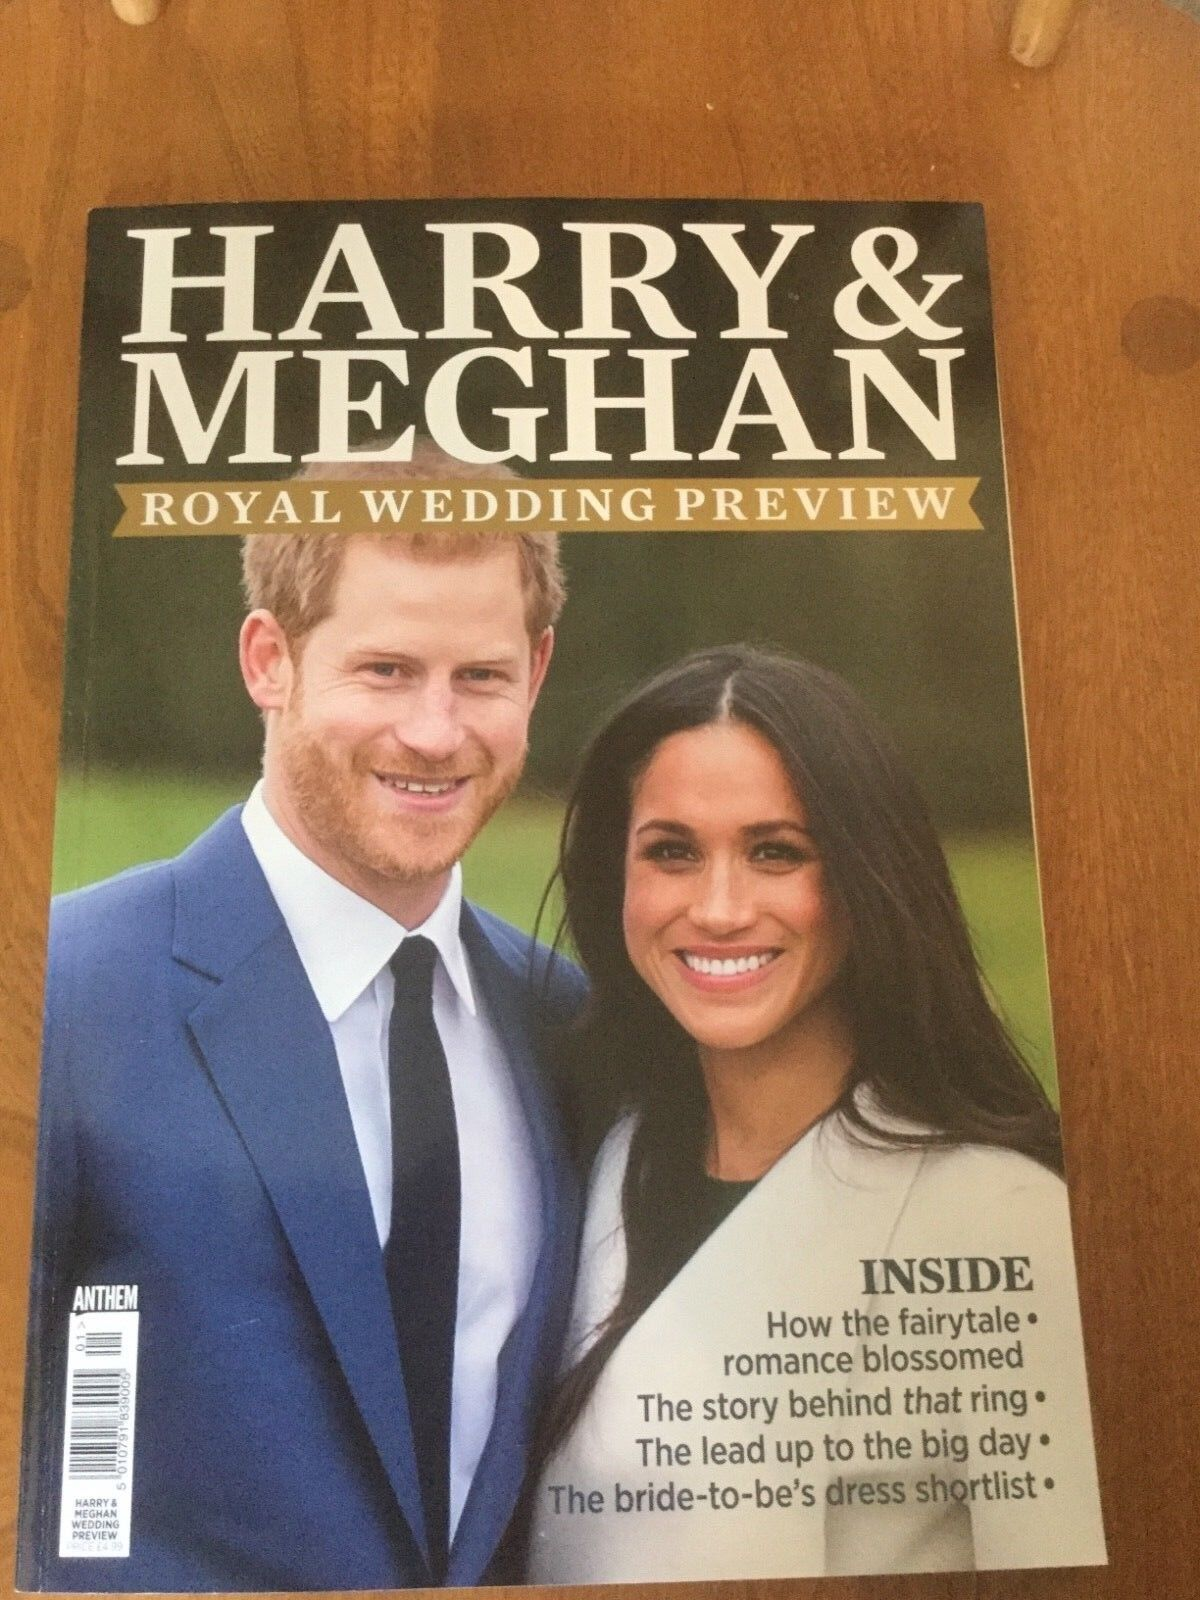 HARRY and MEGHAN ROYAL WEDDING PREVIEW - MEGHAN MARKLE and PRINCE HARRY magazine NEW